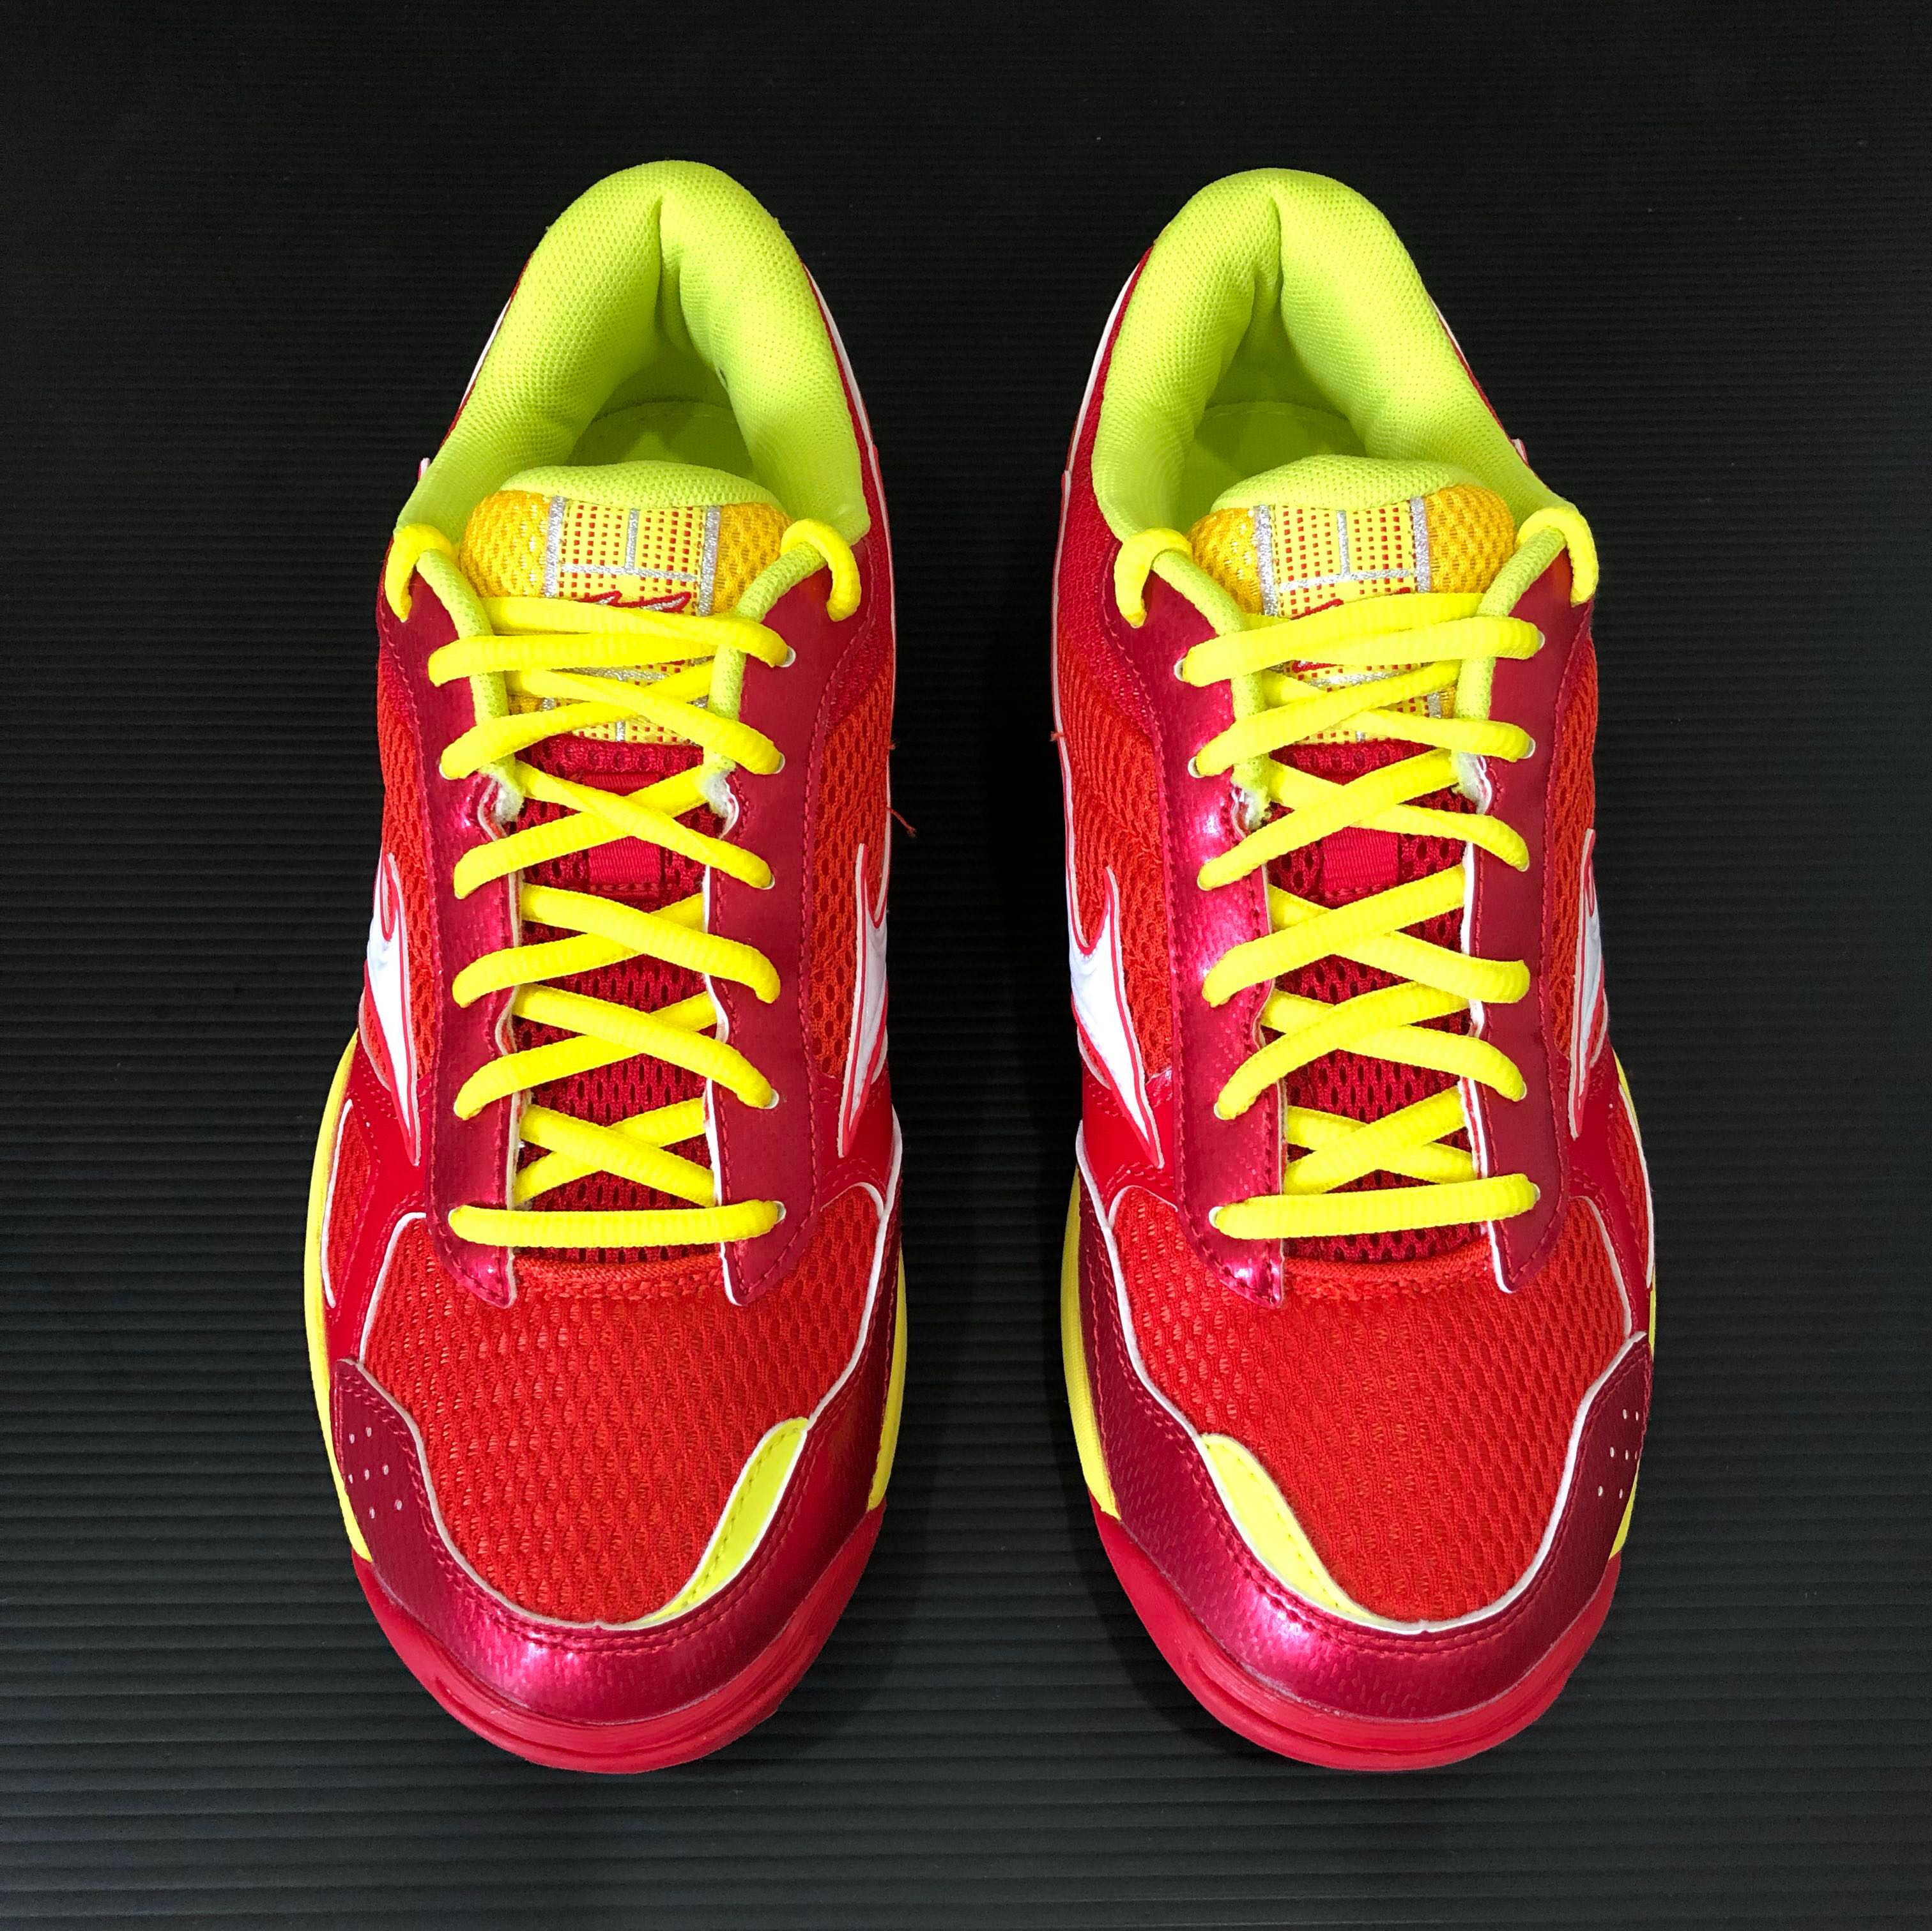 7d3665ae391 Mizuno Wave Twister 3 (Red Yellow) unisex indoor shoes